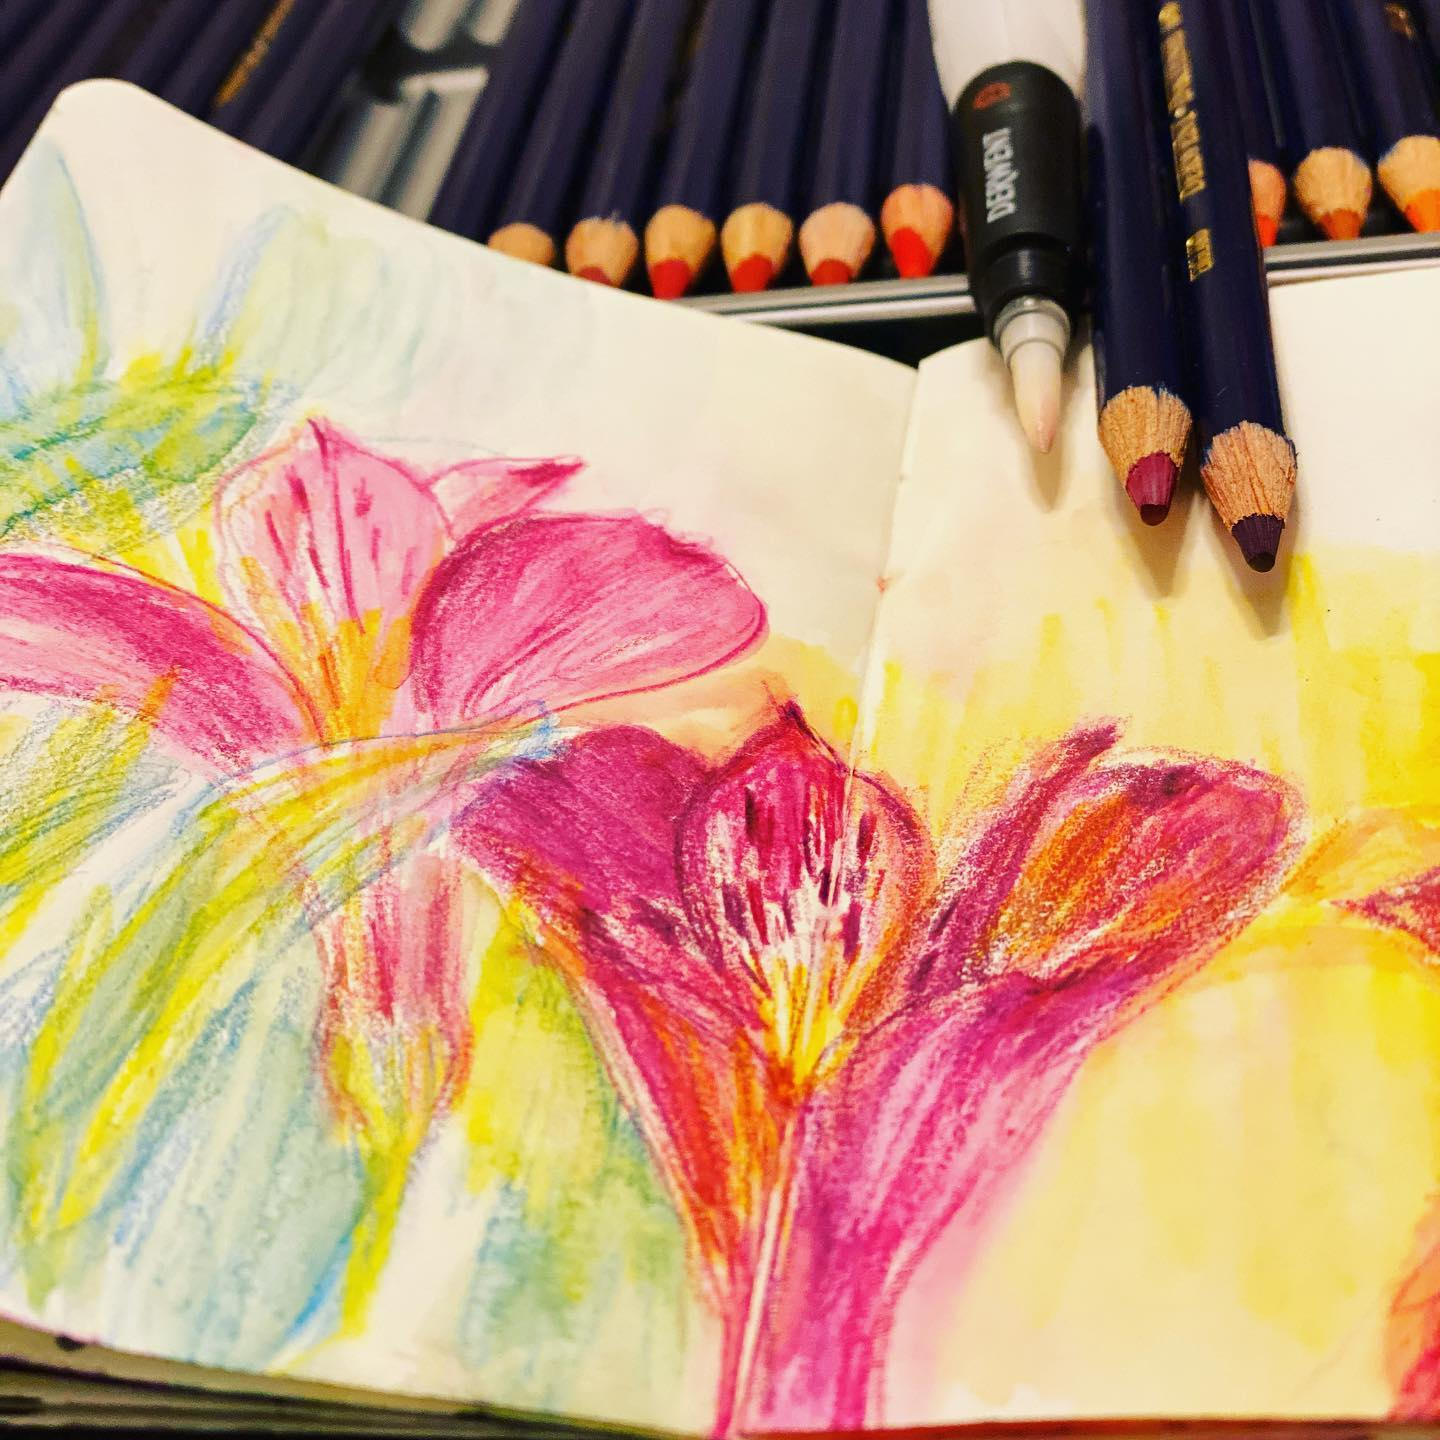 Trying out the new pencils! Love the inky vibrance and the watercolor effect...